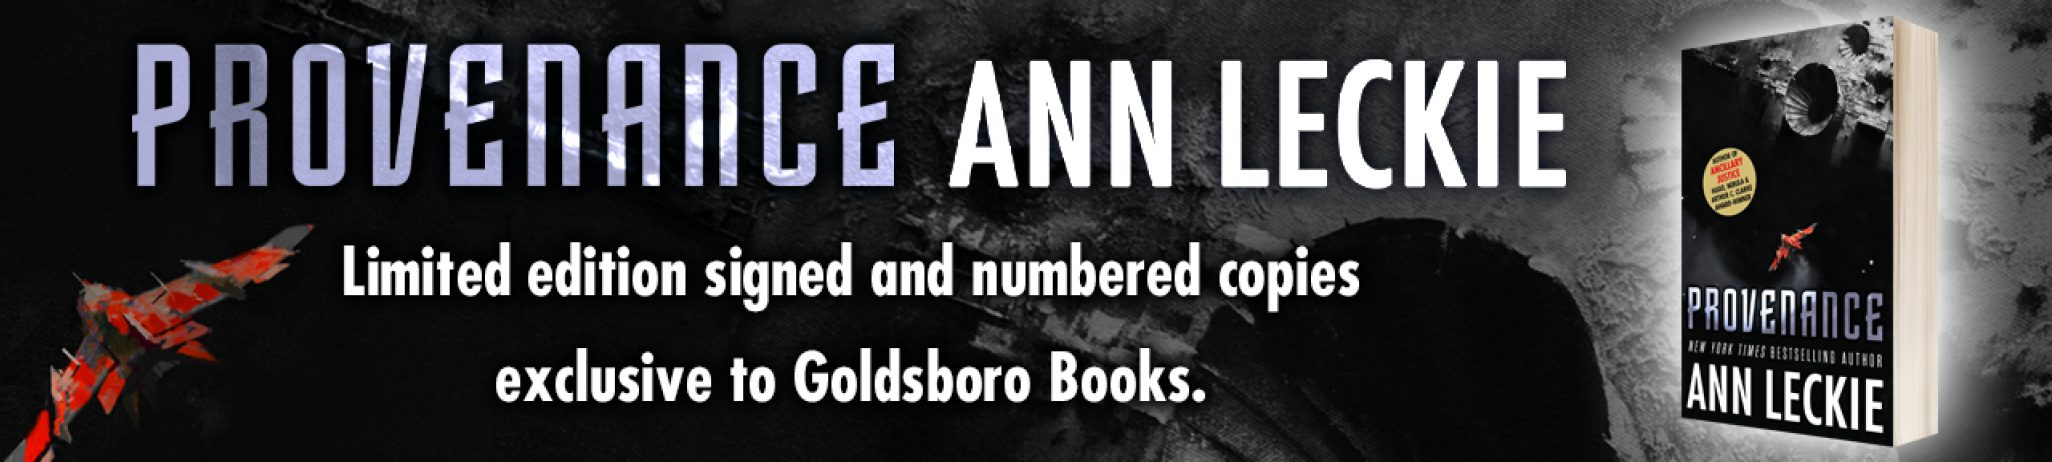 Introduction from Ann Leckie to her new novel Provenance